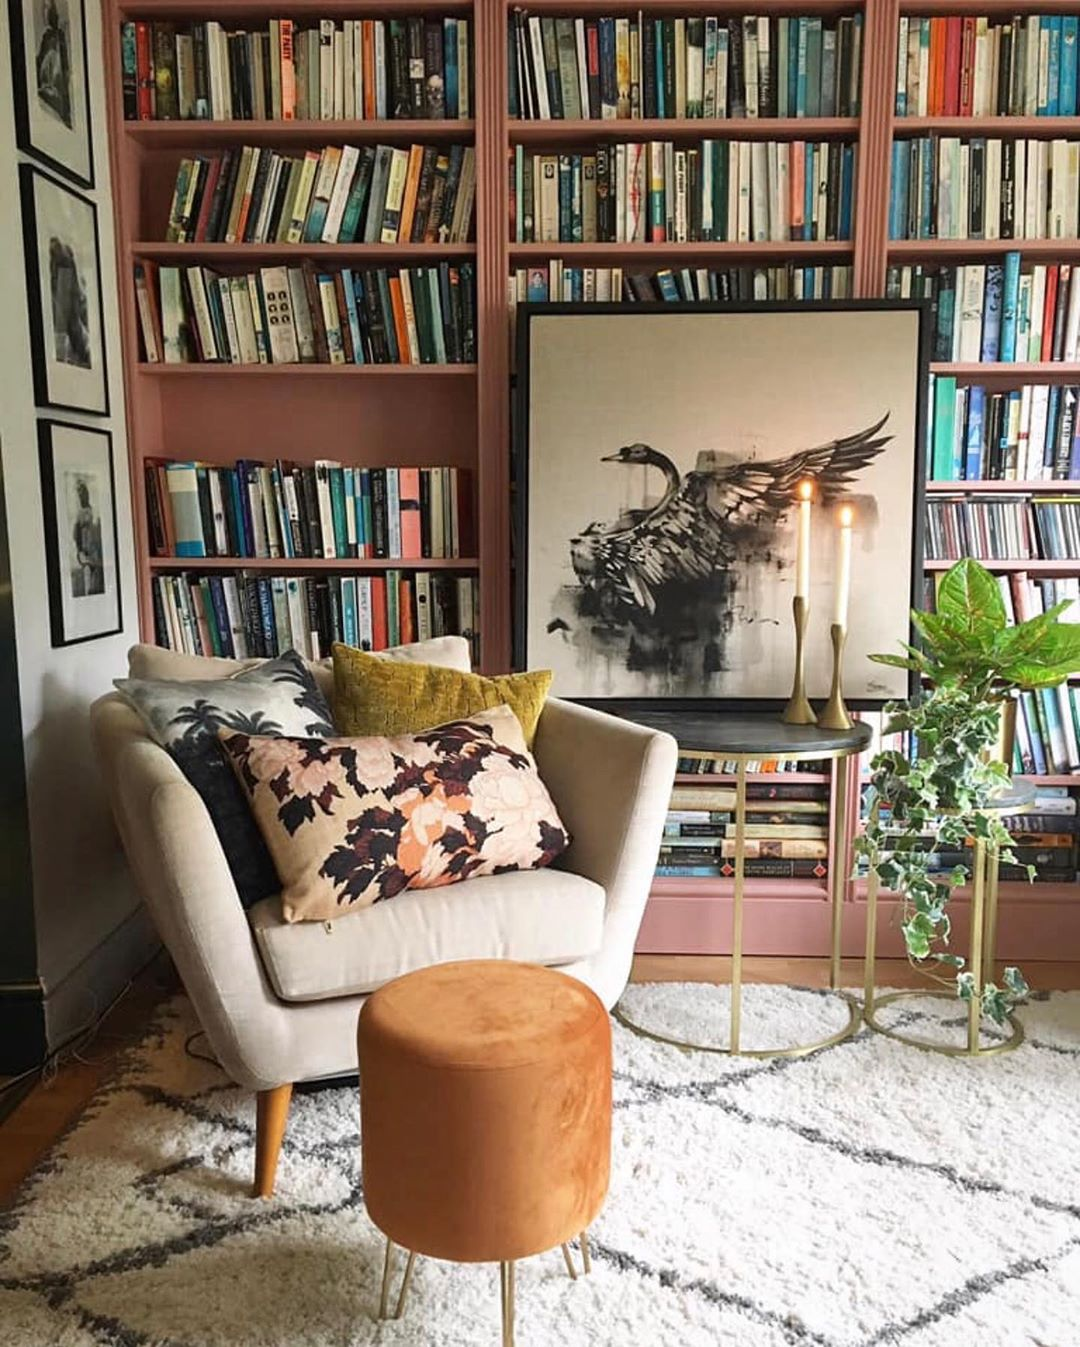 19 Inspiring Living Room Bookshelf Ideas